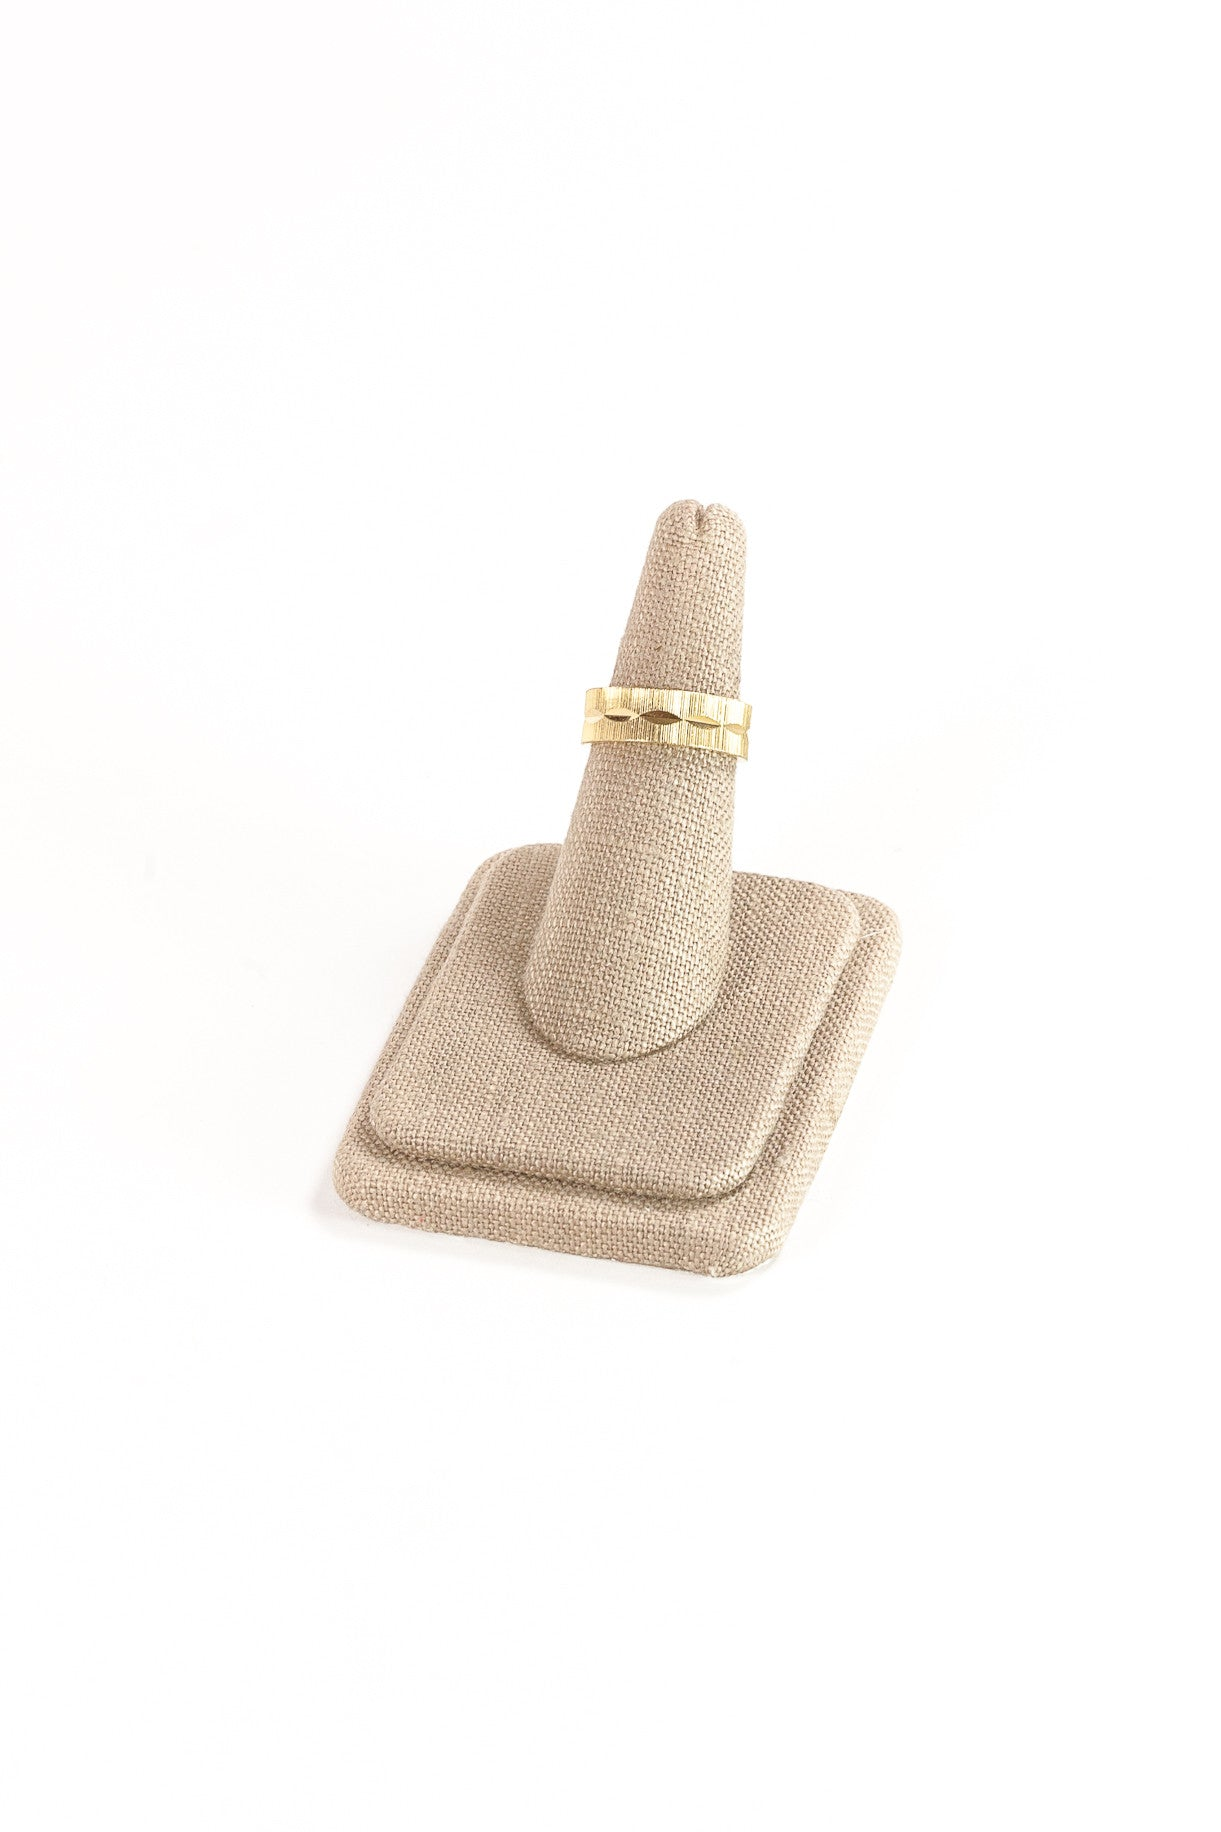 70's__Vintage__Hammered Gold Band